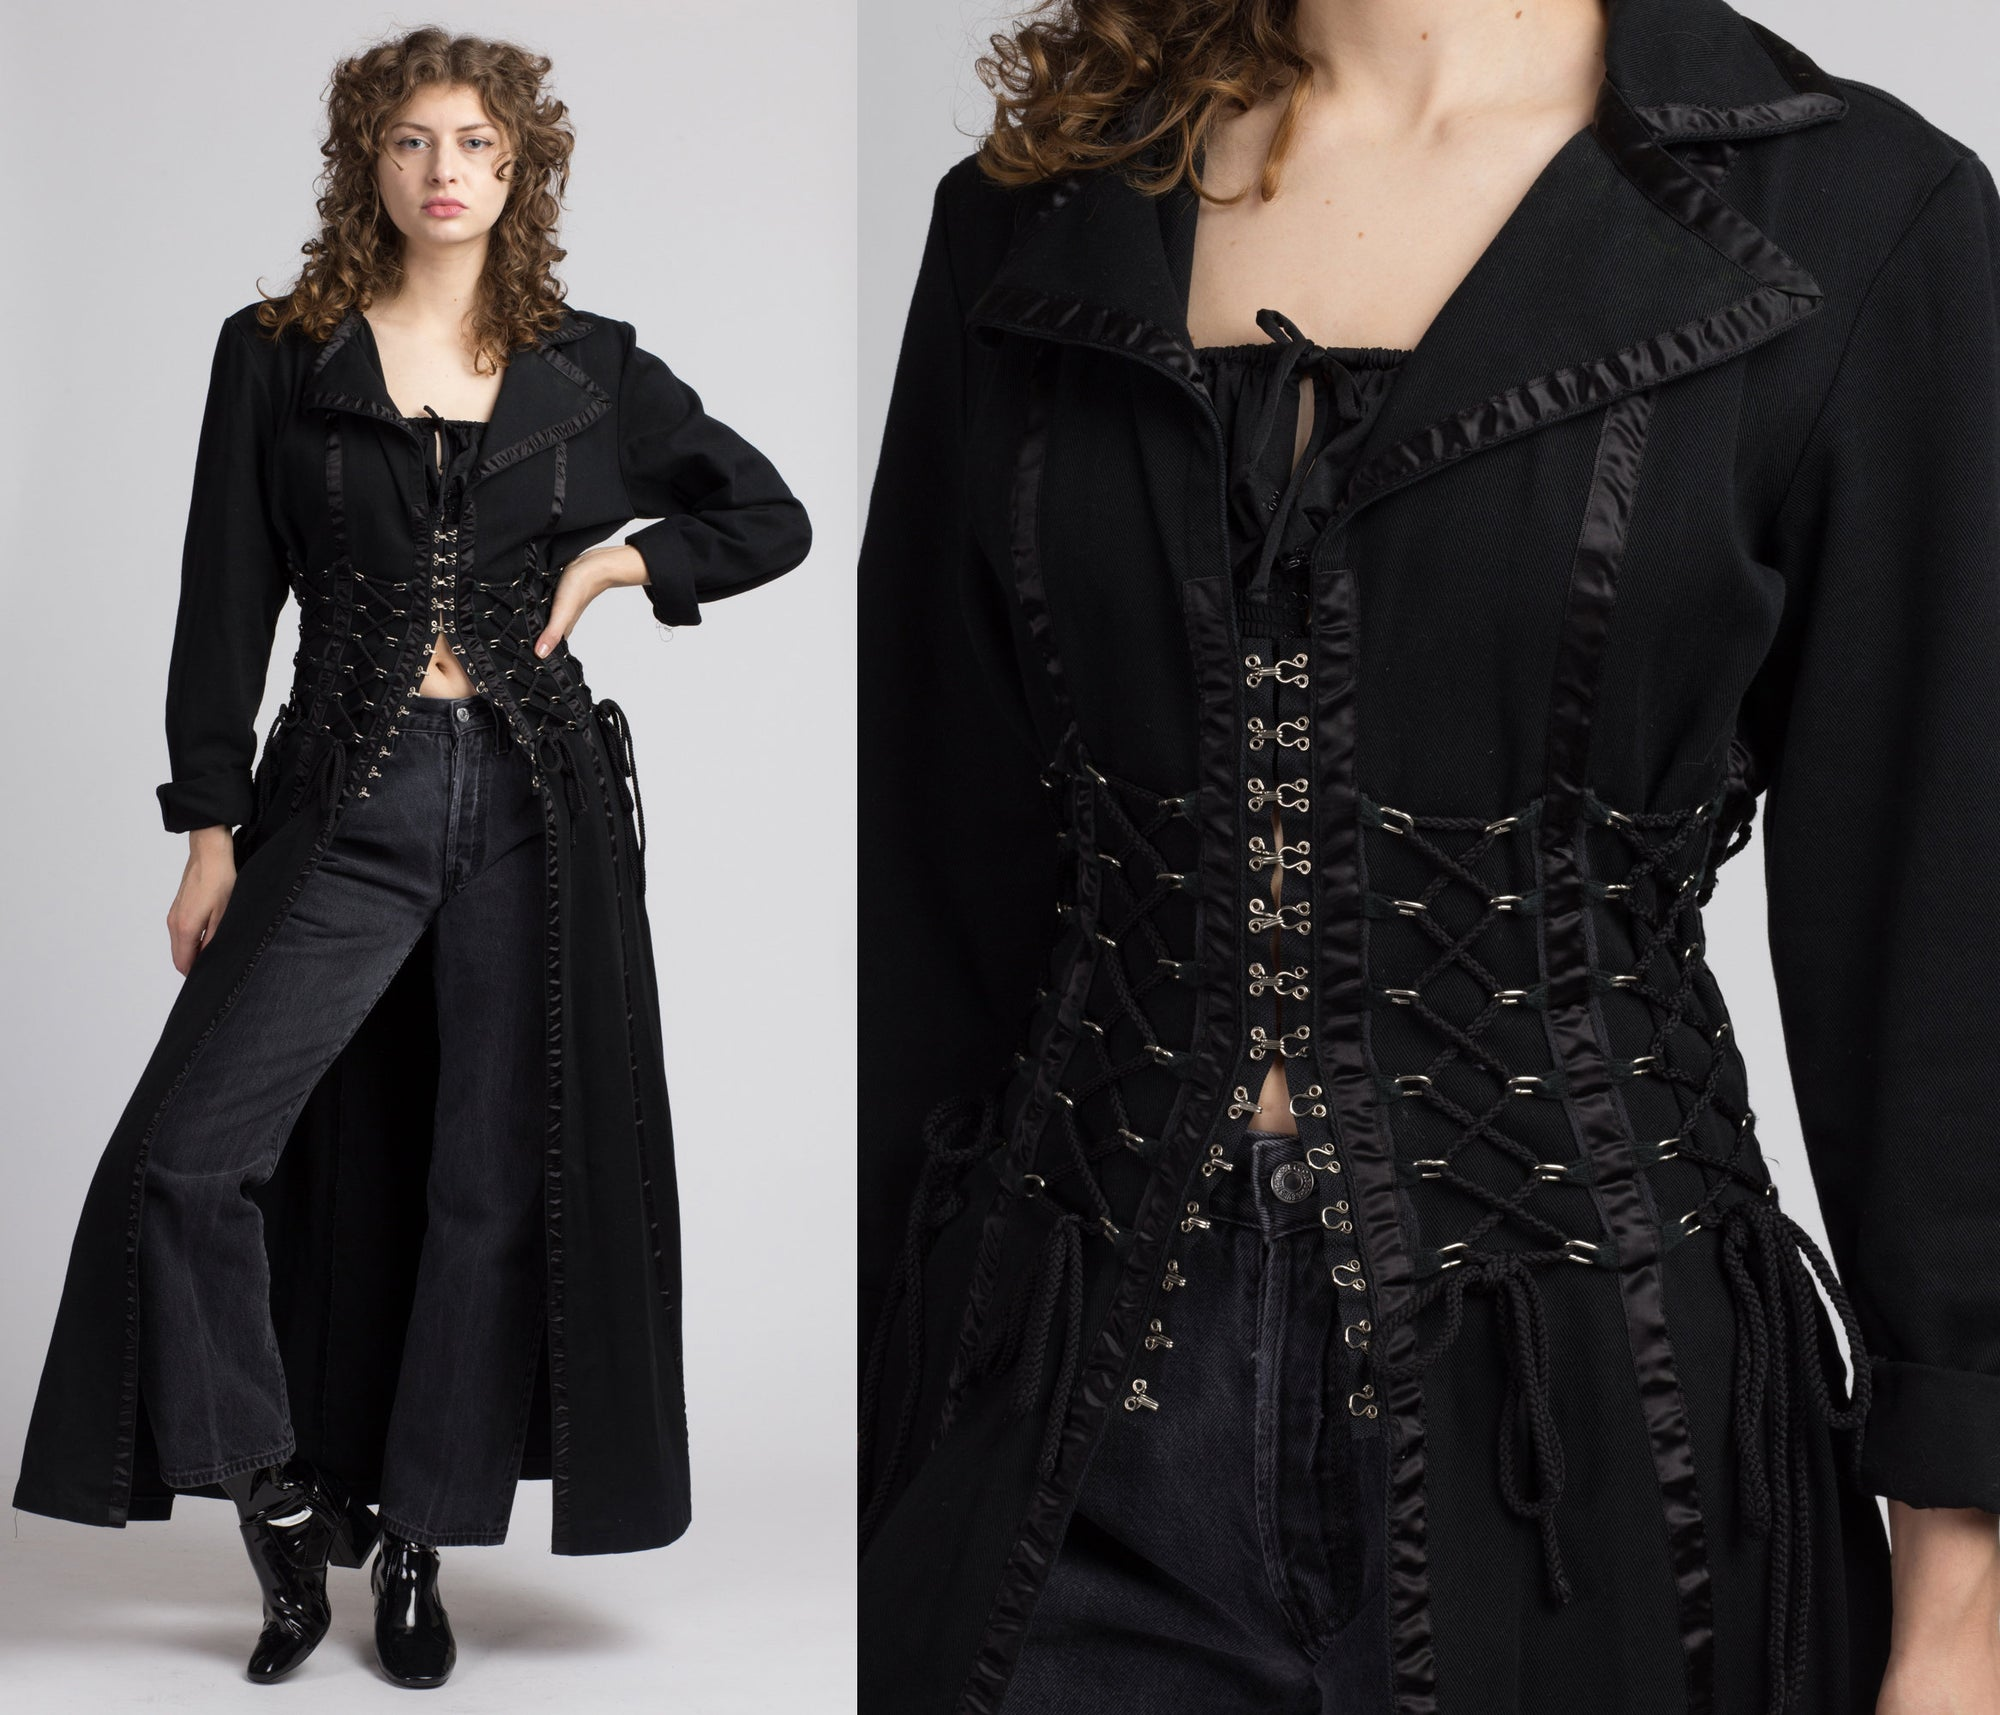 90s Black Denim Punk Gothic Corset Trench Coat - One Size